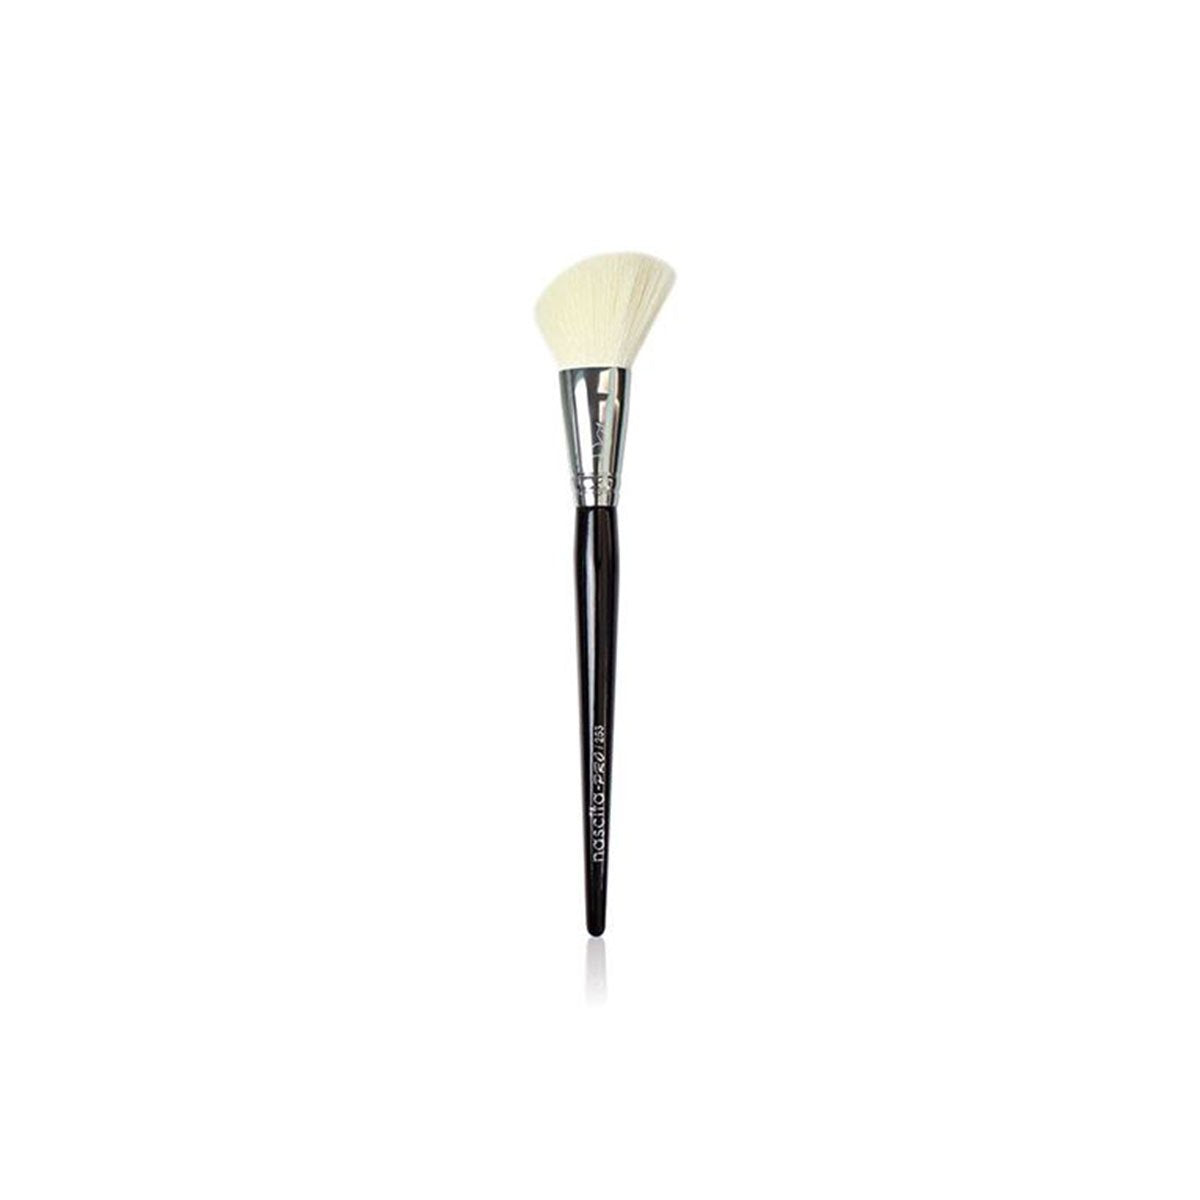 Nascita Do Pro Brush - Angled Blush Brush